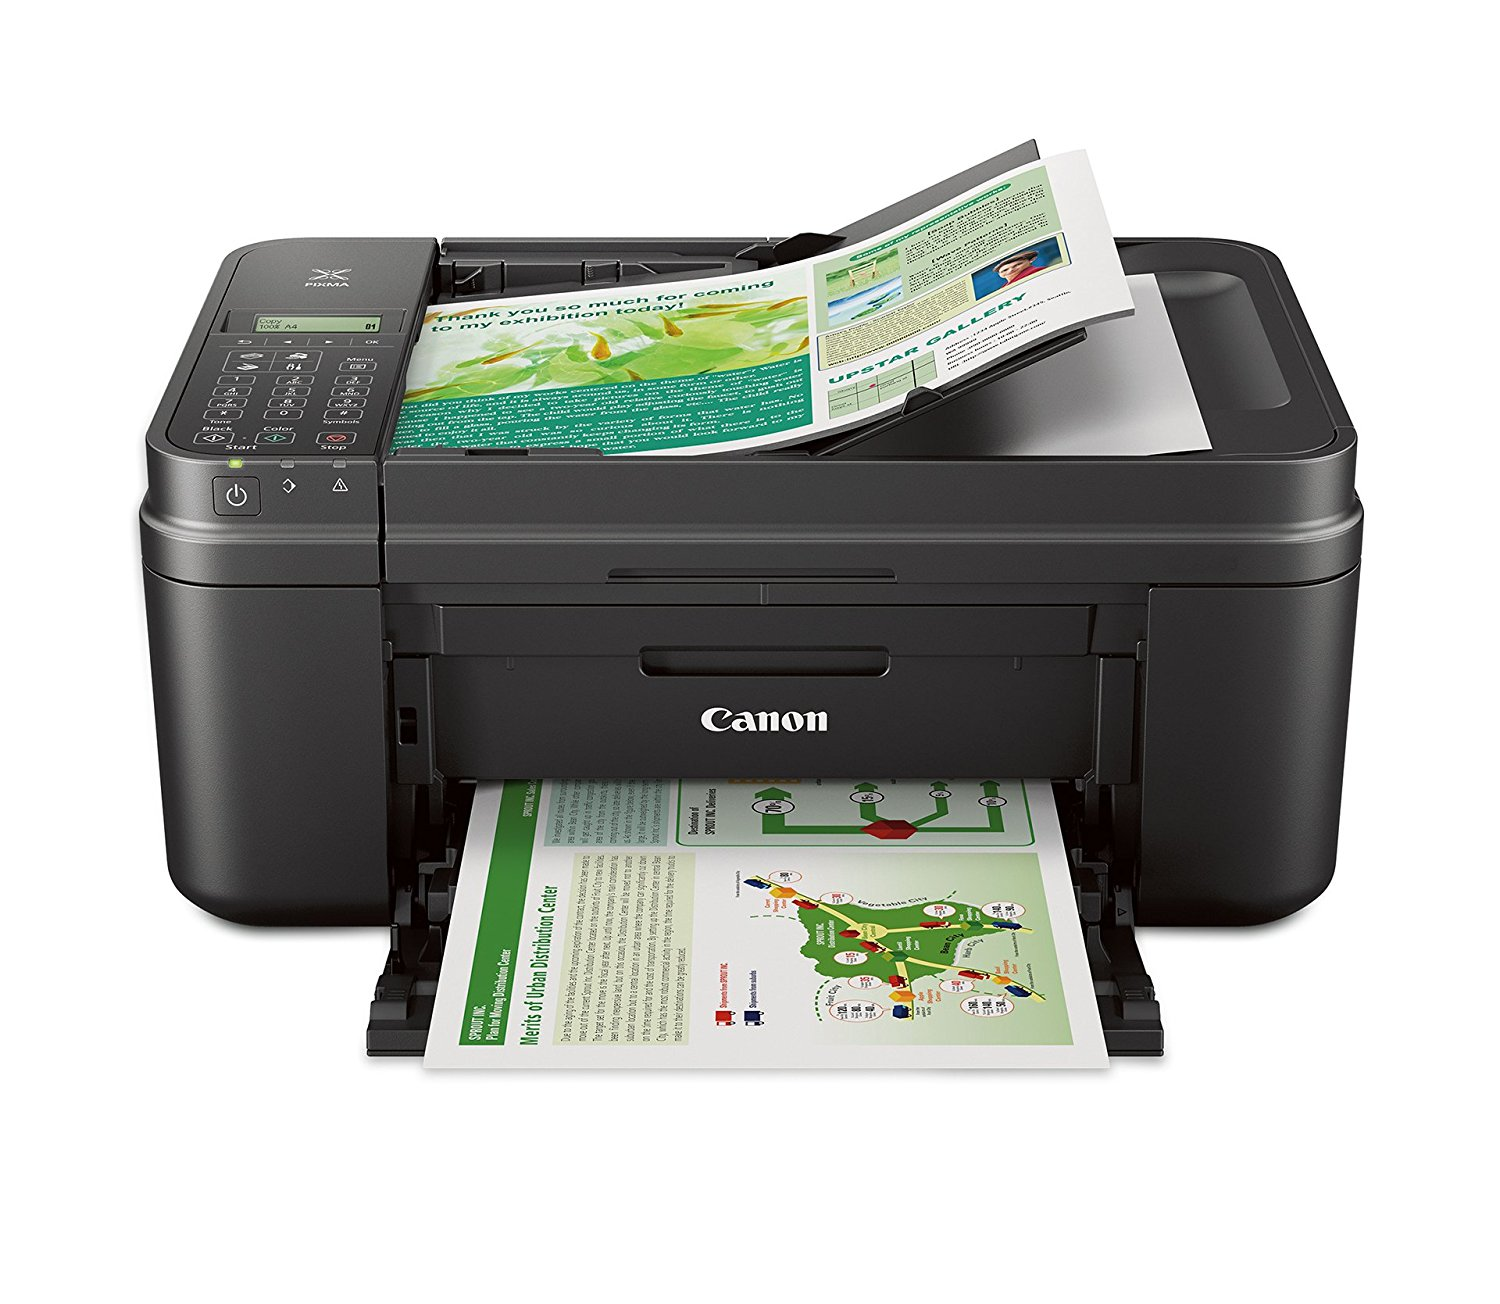 Top 8 Best Wireless Printers Under 100 In 2020 Reviews And Comparison Binarytides